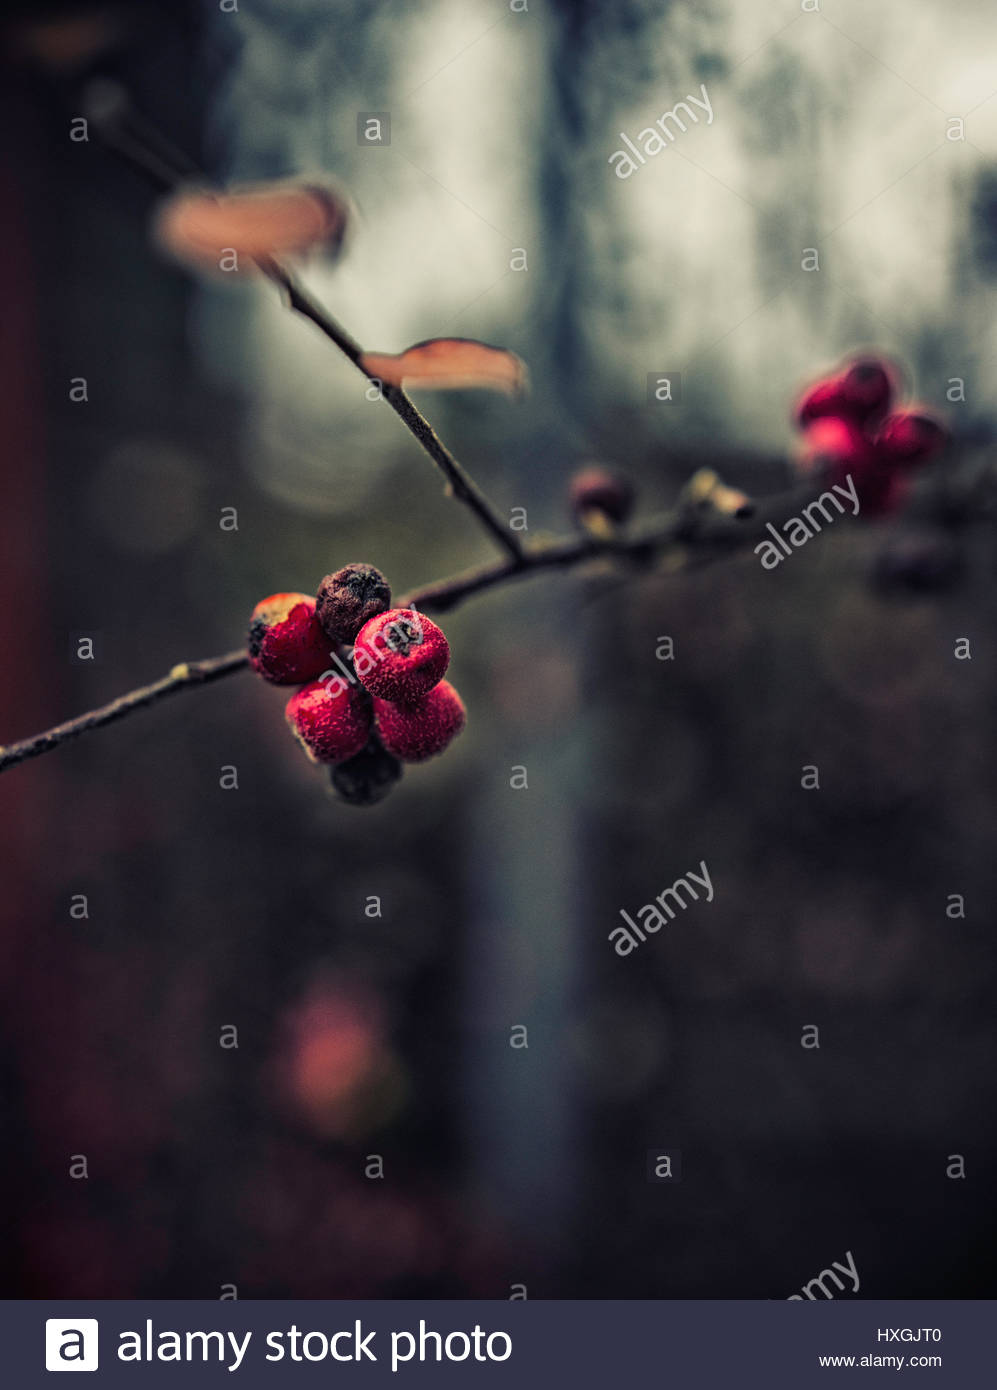 Red Berries in close up against a soft abstract background - Stock Image